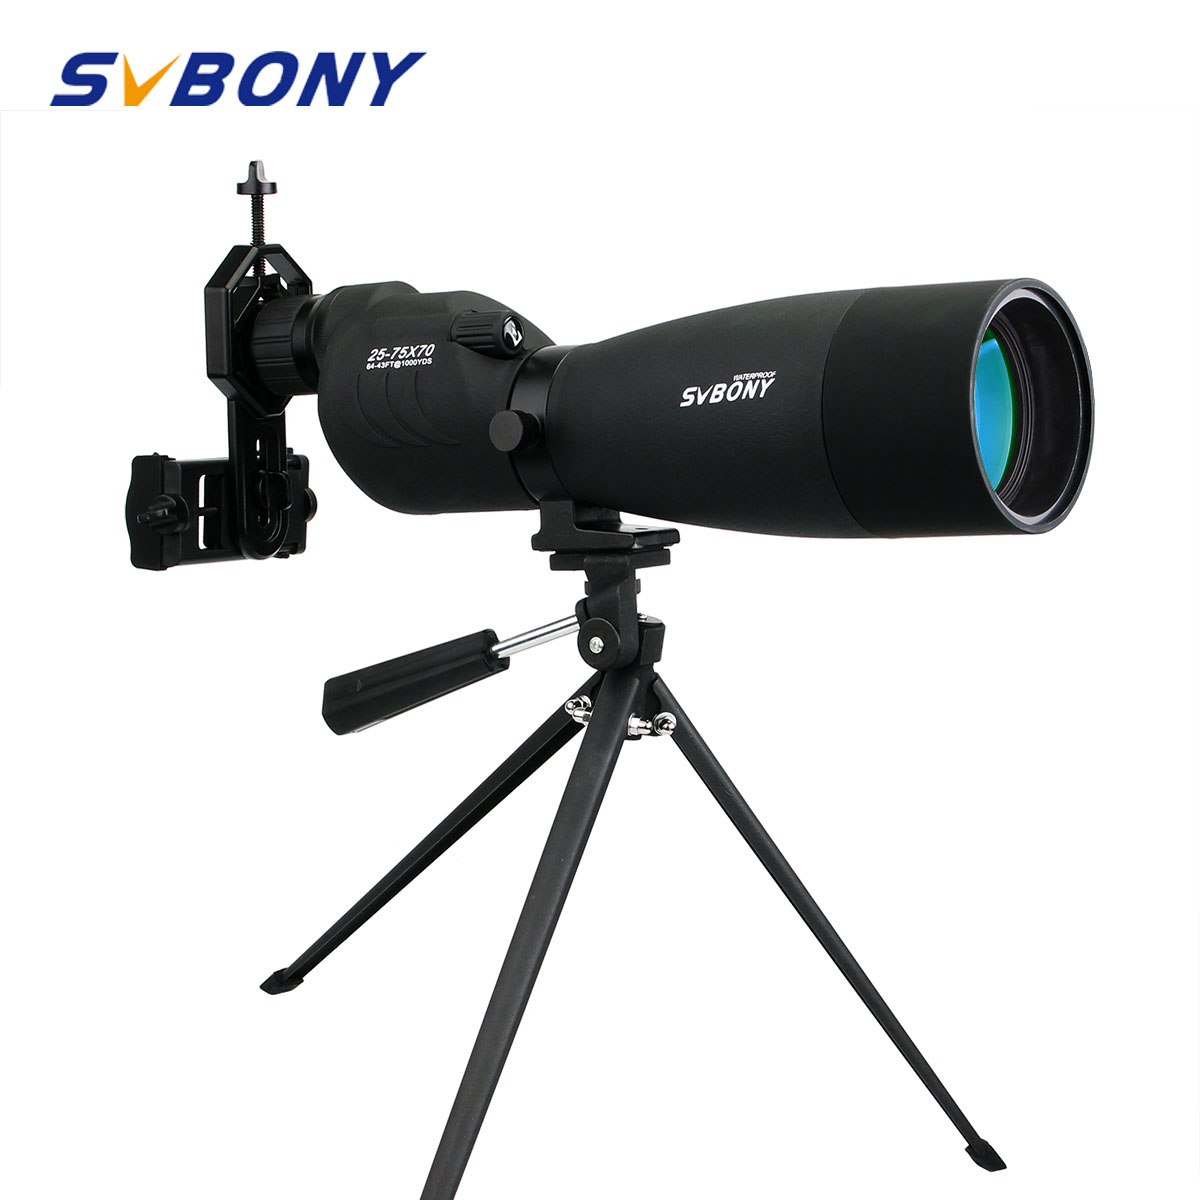 SVBONY Zoom Telescope 25-75x70 SV17 Spotting Scope Waterproof BAK4 Prism FMC Straight Telescope + Table Tripod +Adapter F9326